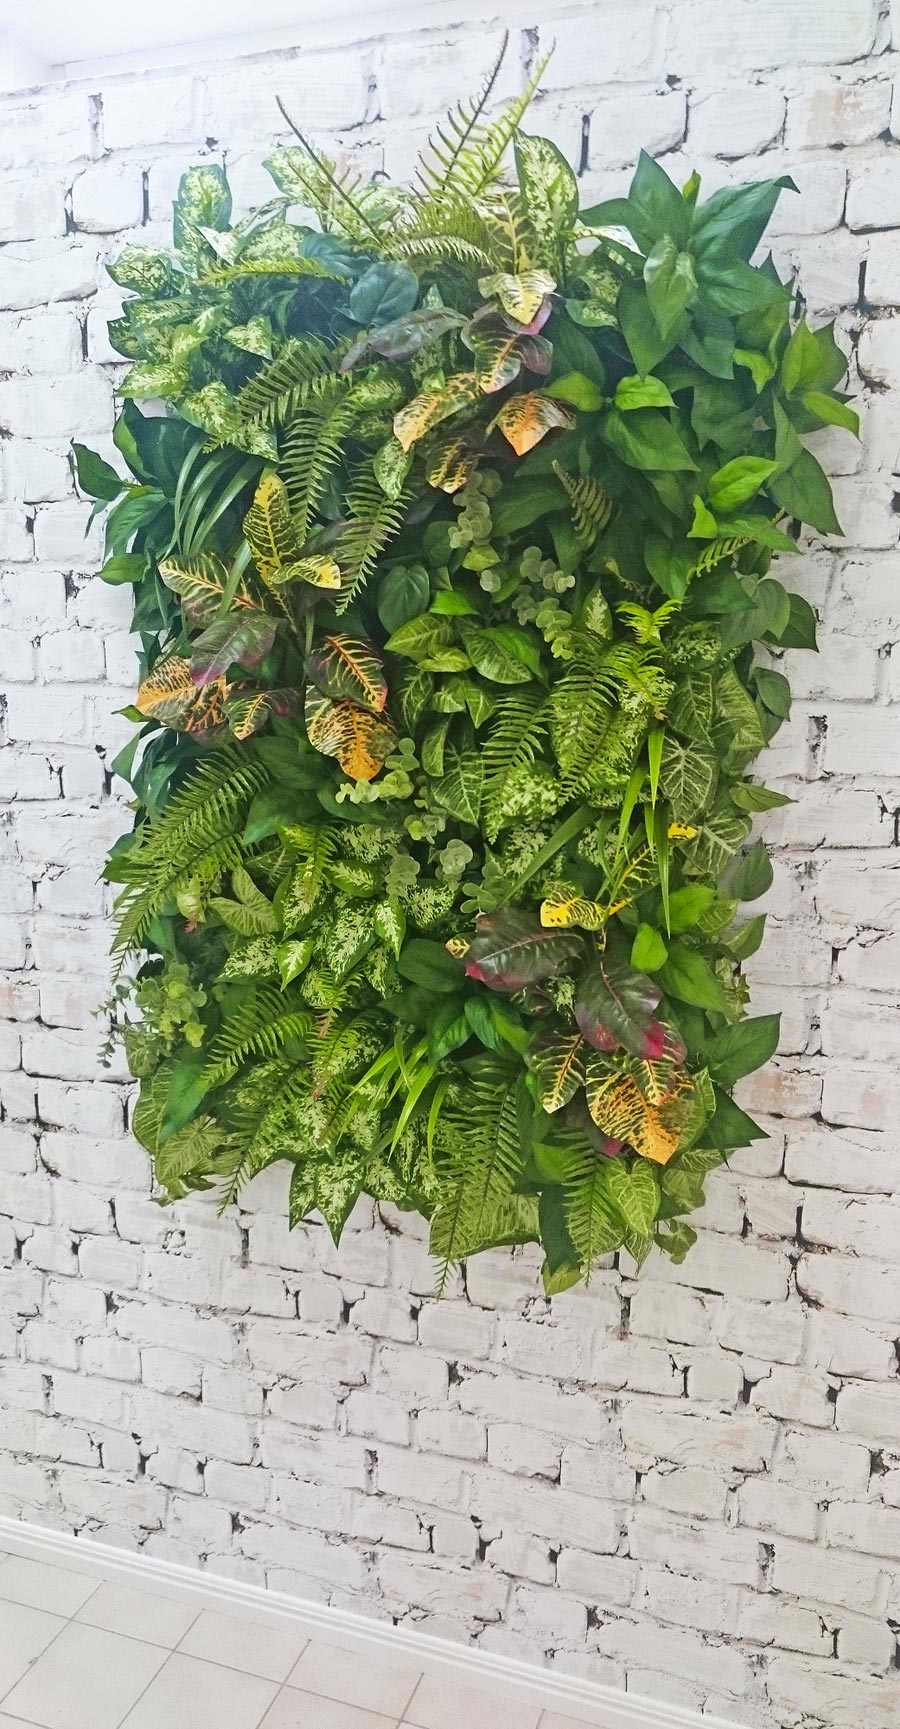 Articial Plants - Living Walls- deluxe 150 x 120cm